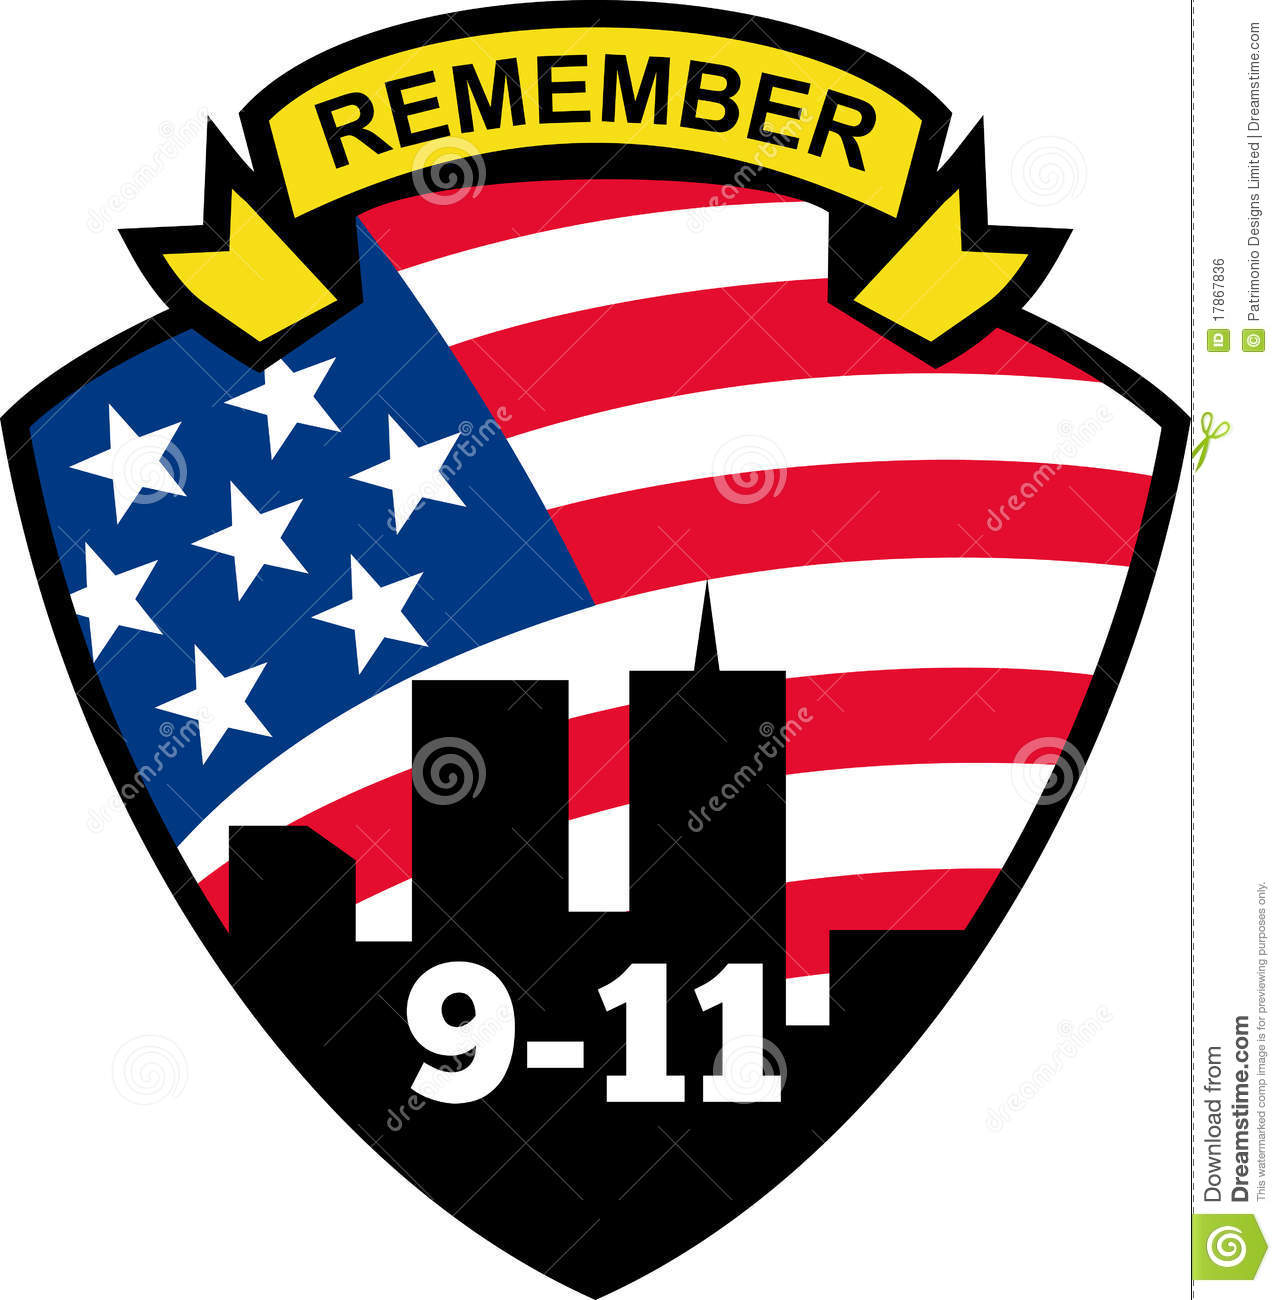 Remember 911 Clipart.